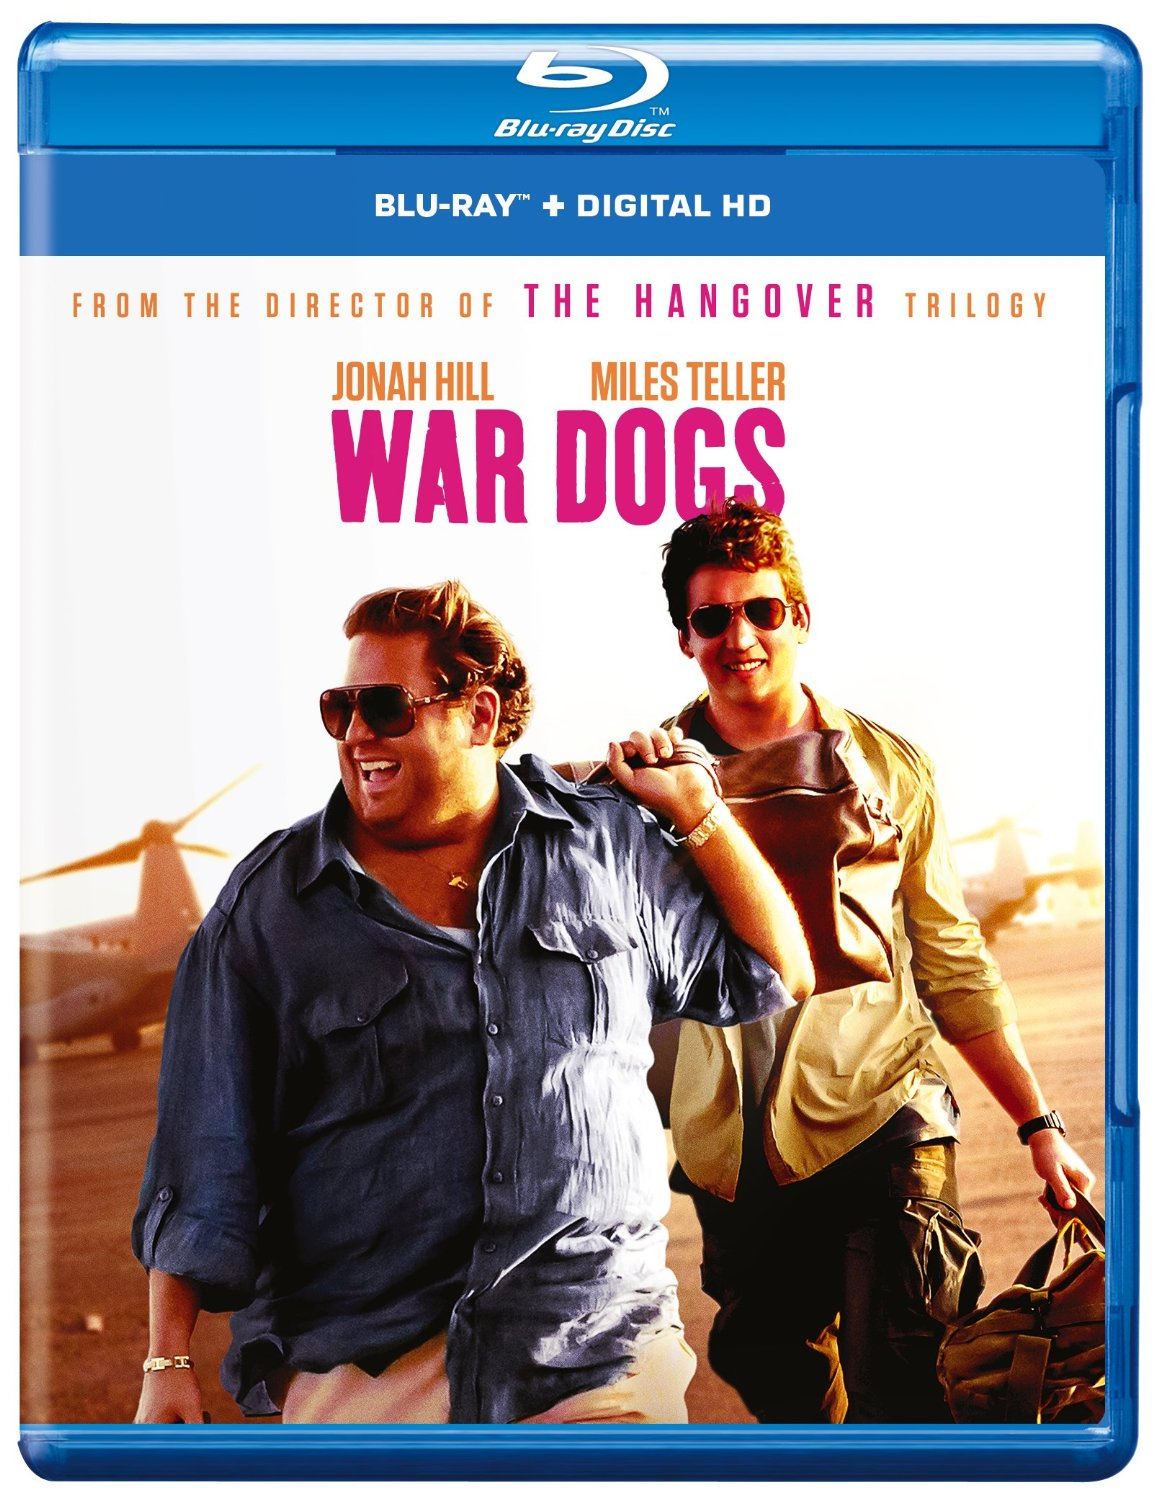 War Dogs (2016) poster image